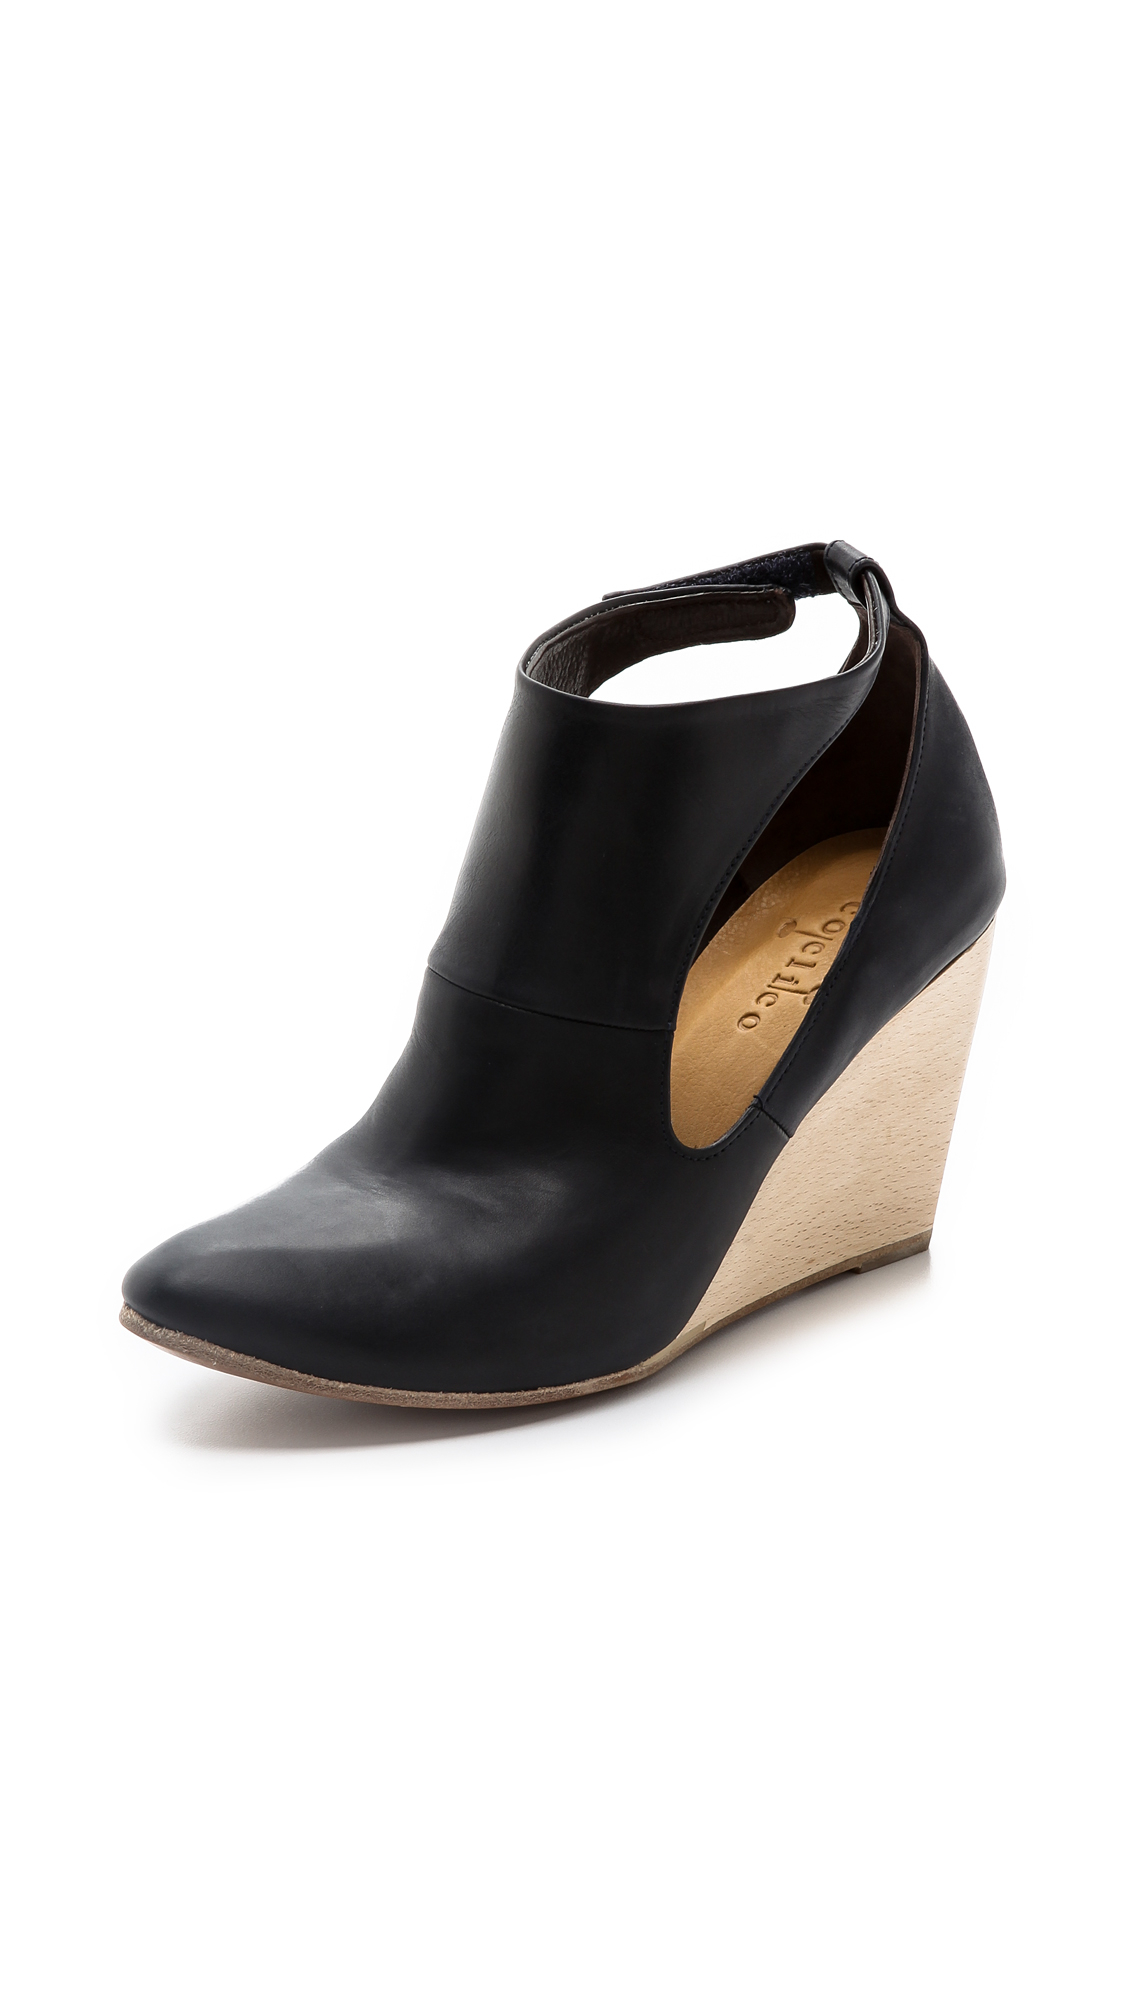 Lyst - Coclico Jory Booties in Black